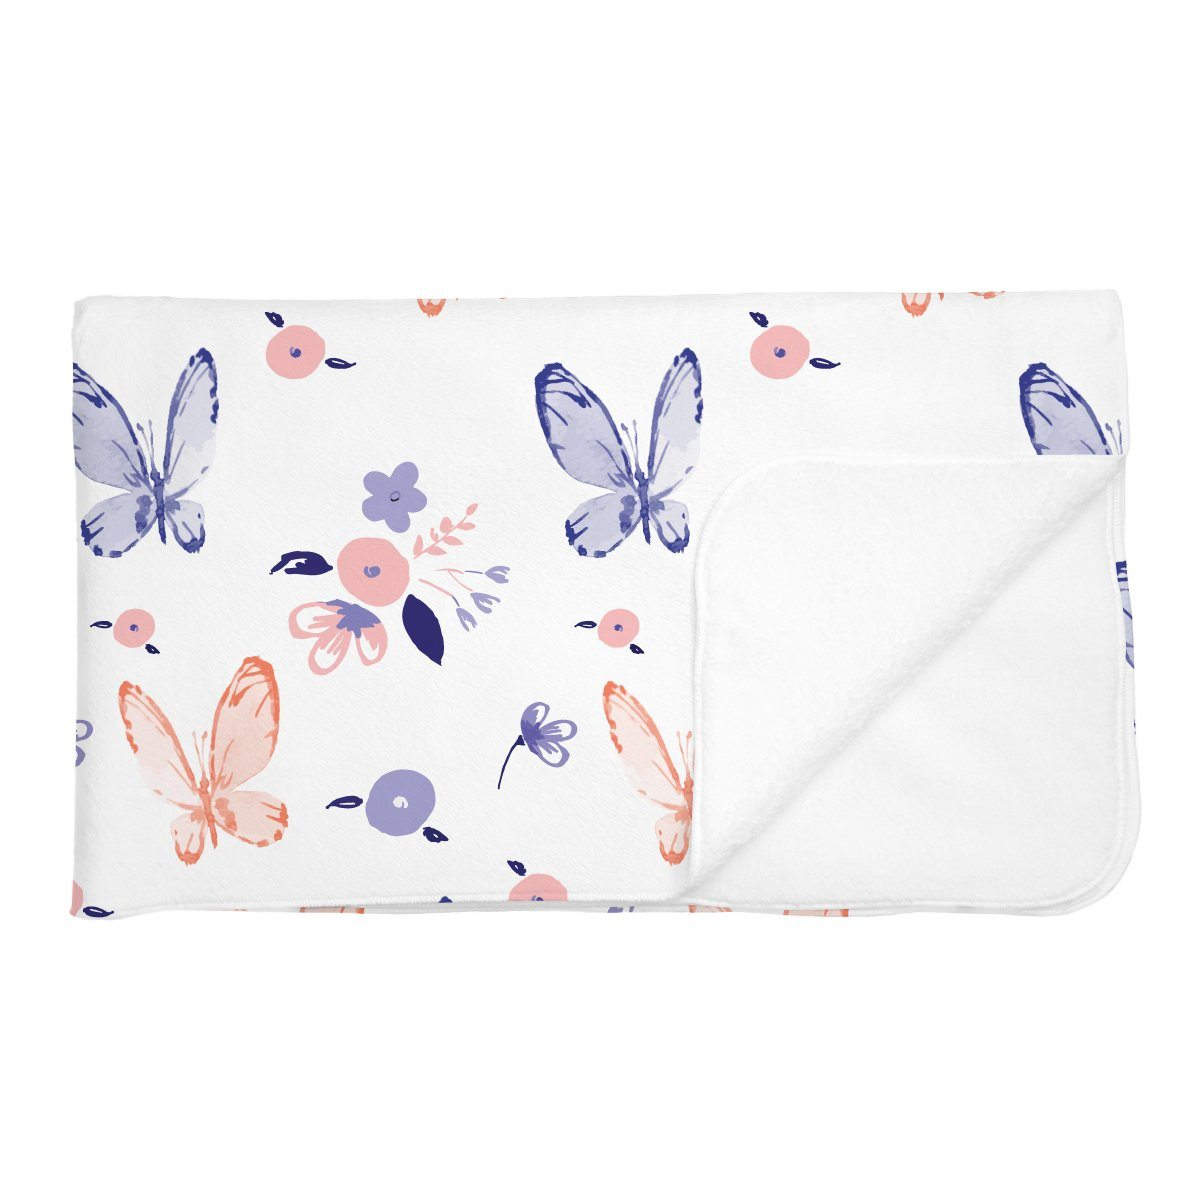 Angelina's Summer Butterfly | Adult Size Blanket